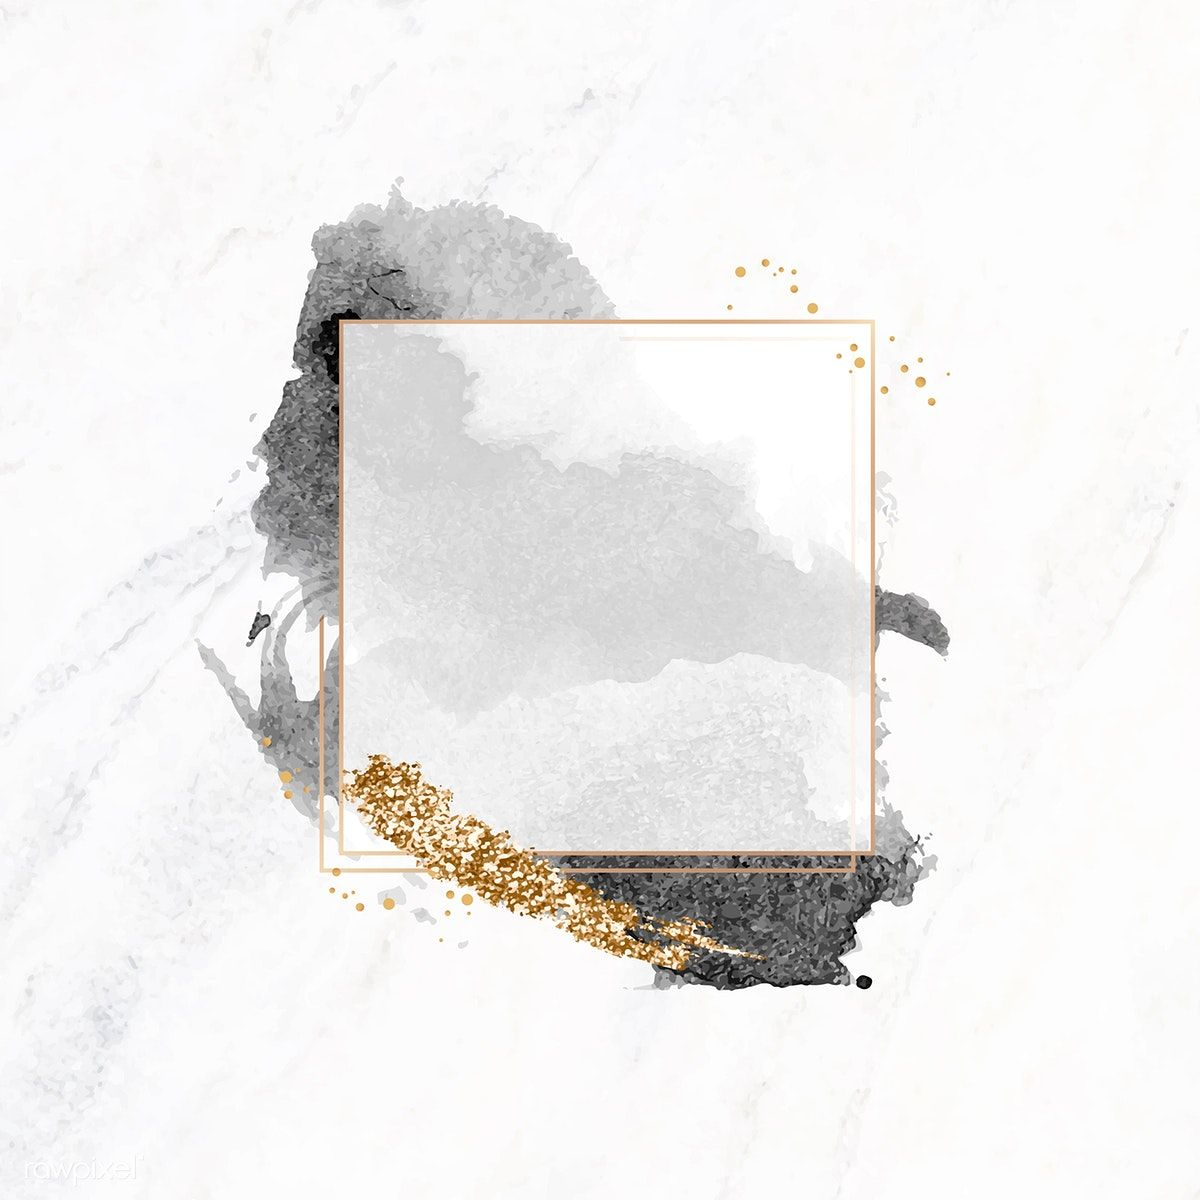 Download premium illustration of Gold square frame on black watercolor #goldglitterbackground